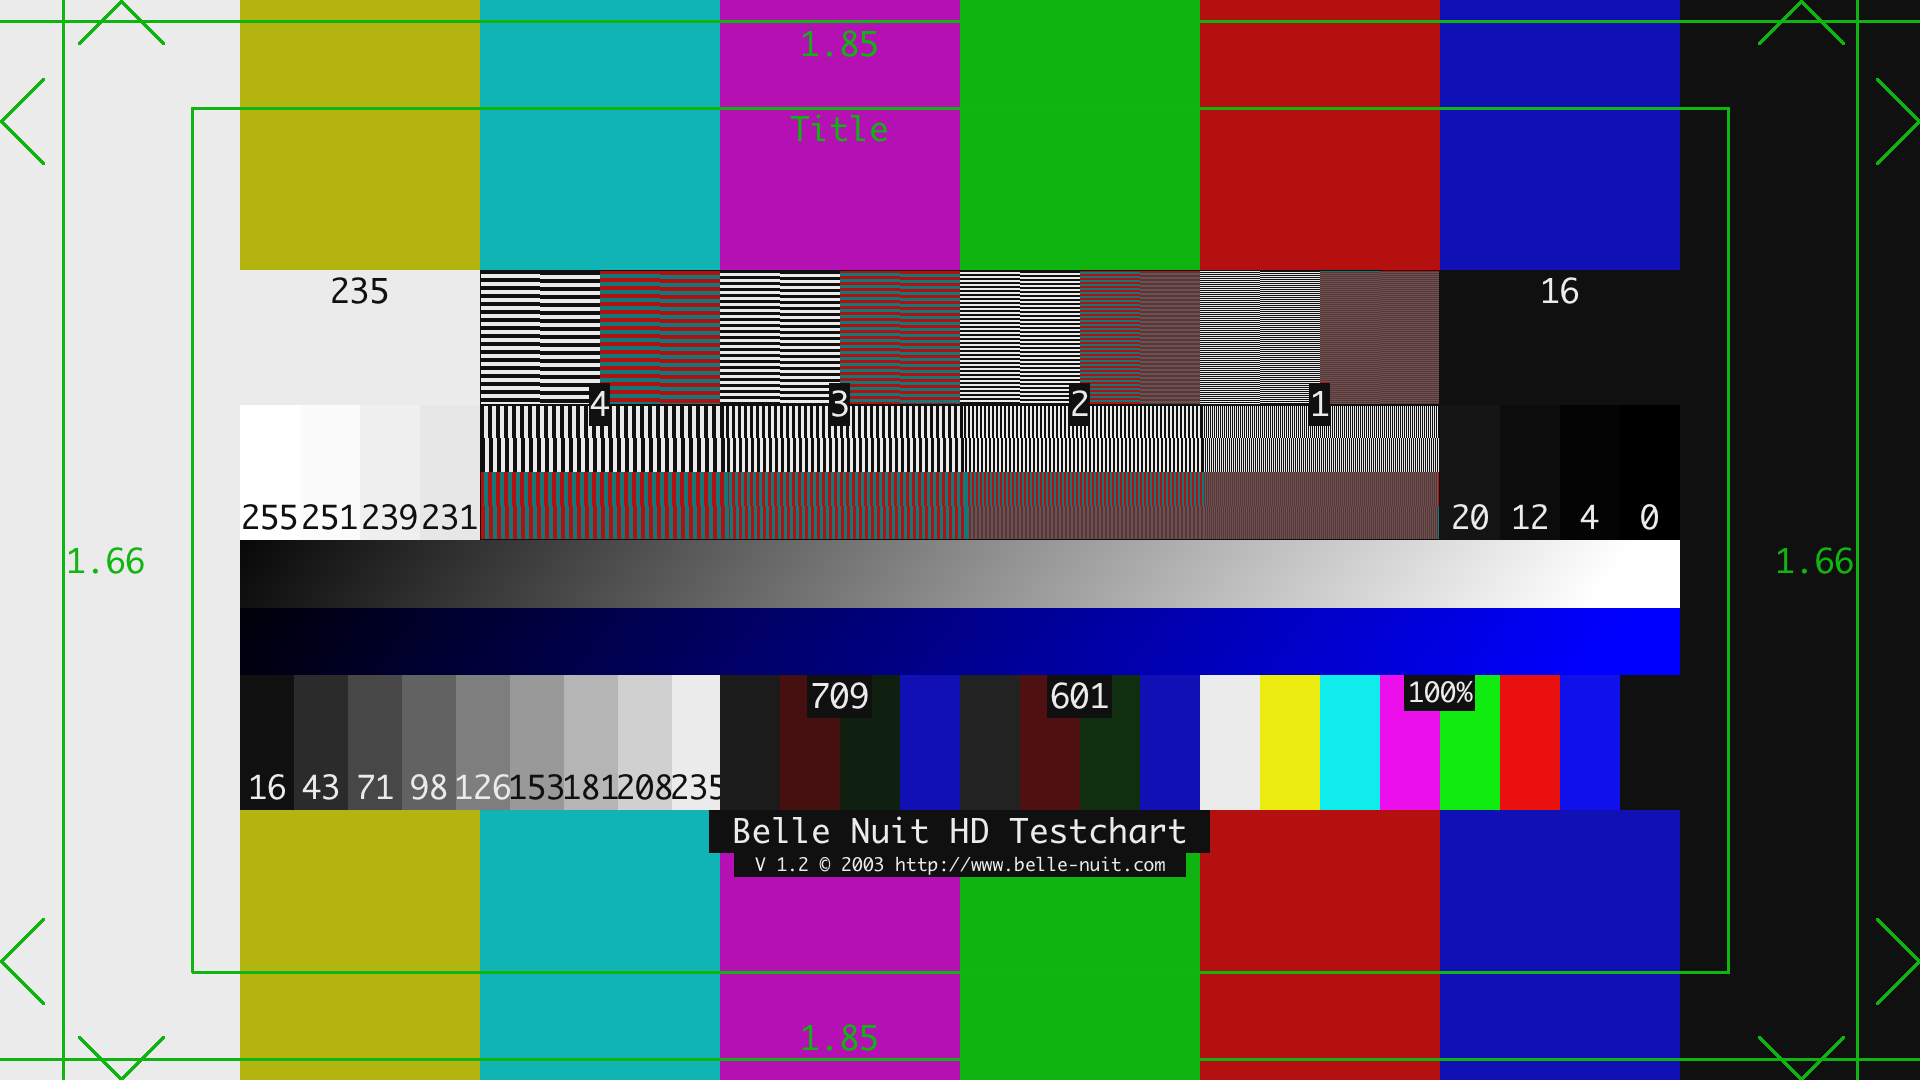 Text Fuzzy Blurry with HDMI cable - VideoHelp Forum